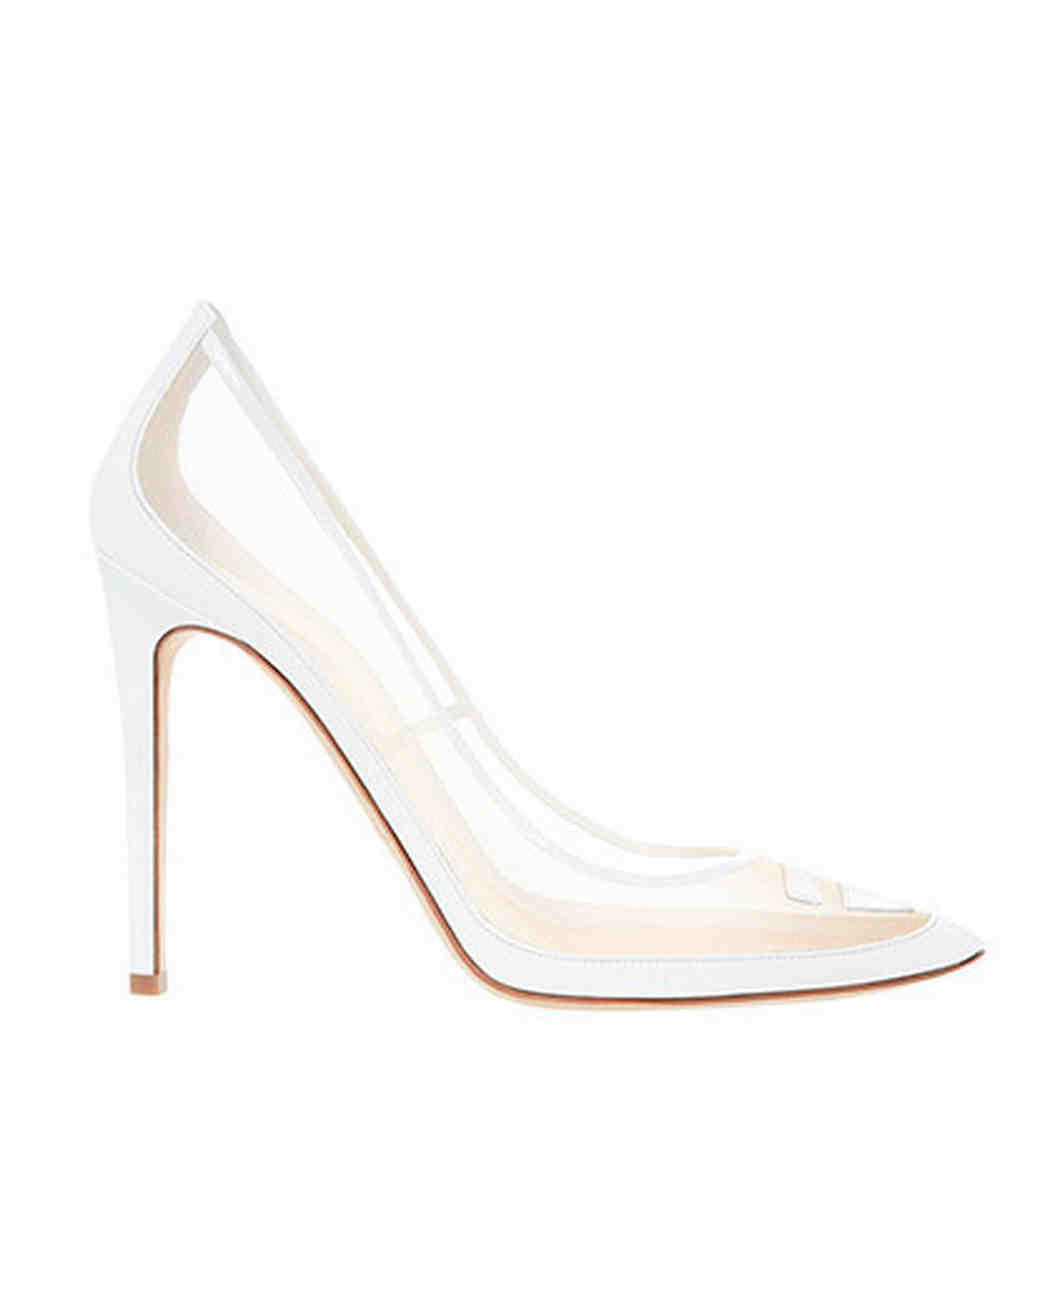 mesh-wedding-shoes-alejandro-ingelmo-tron-pump-white-0315.jpg